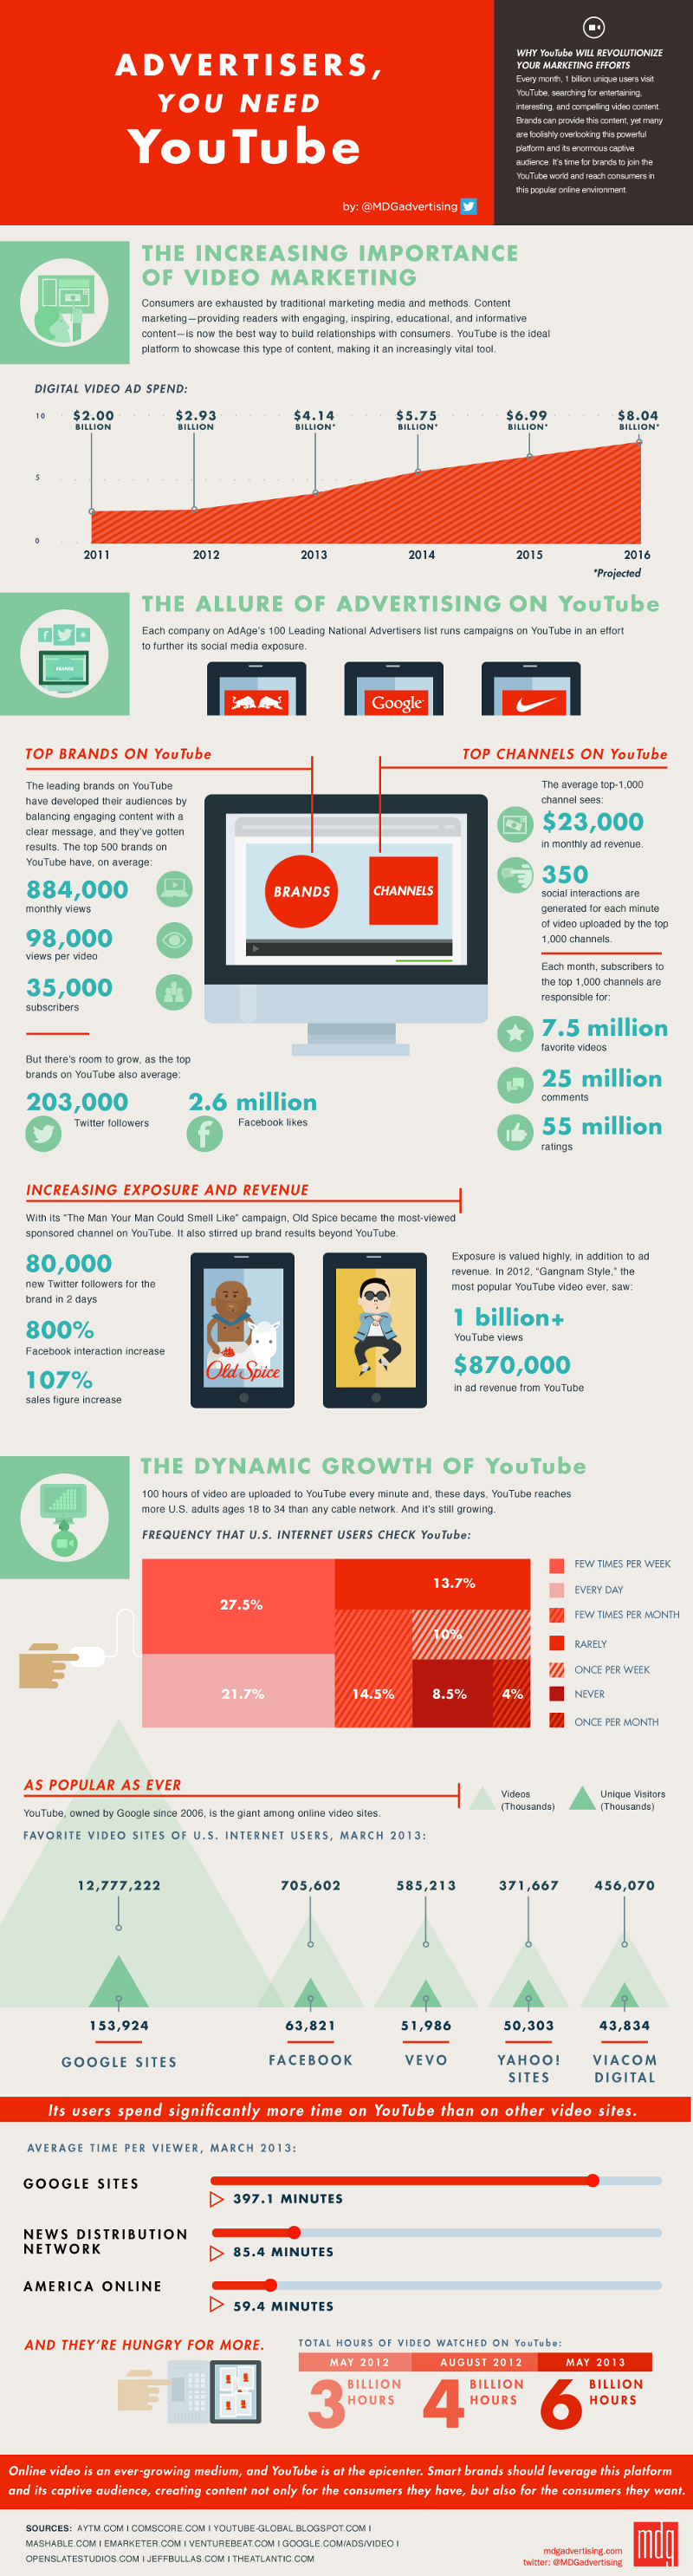 YouTube Video Advertising Trends